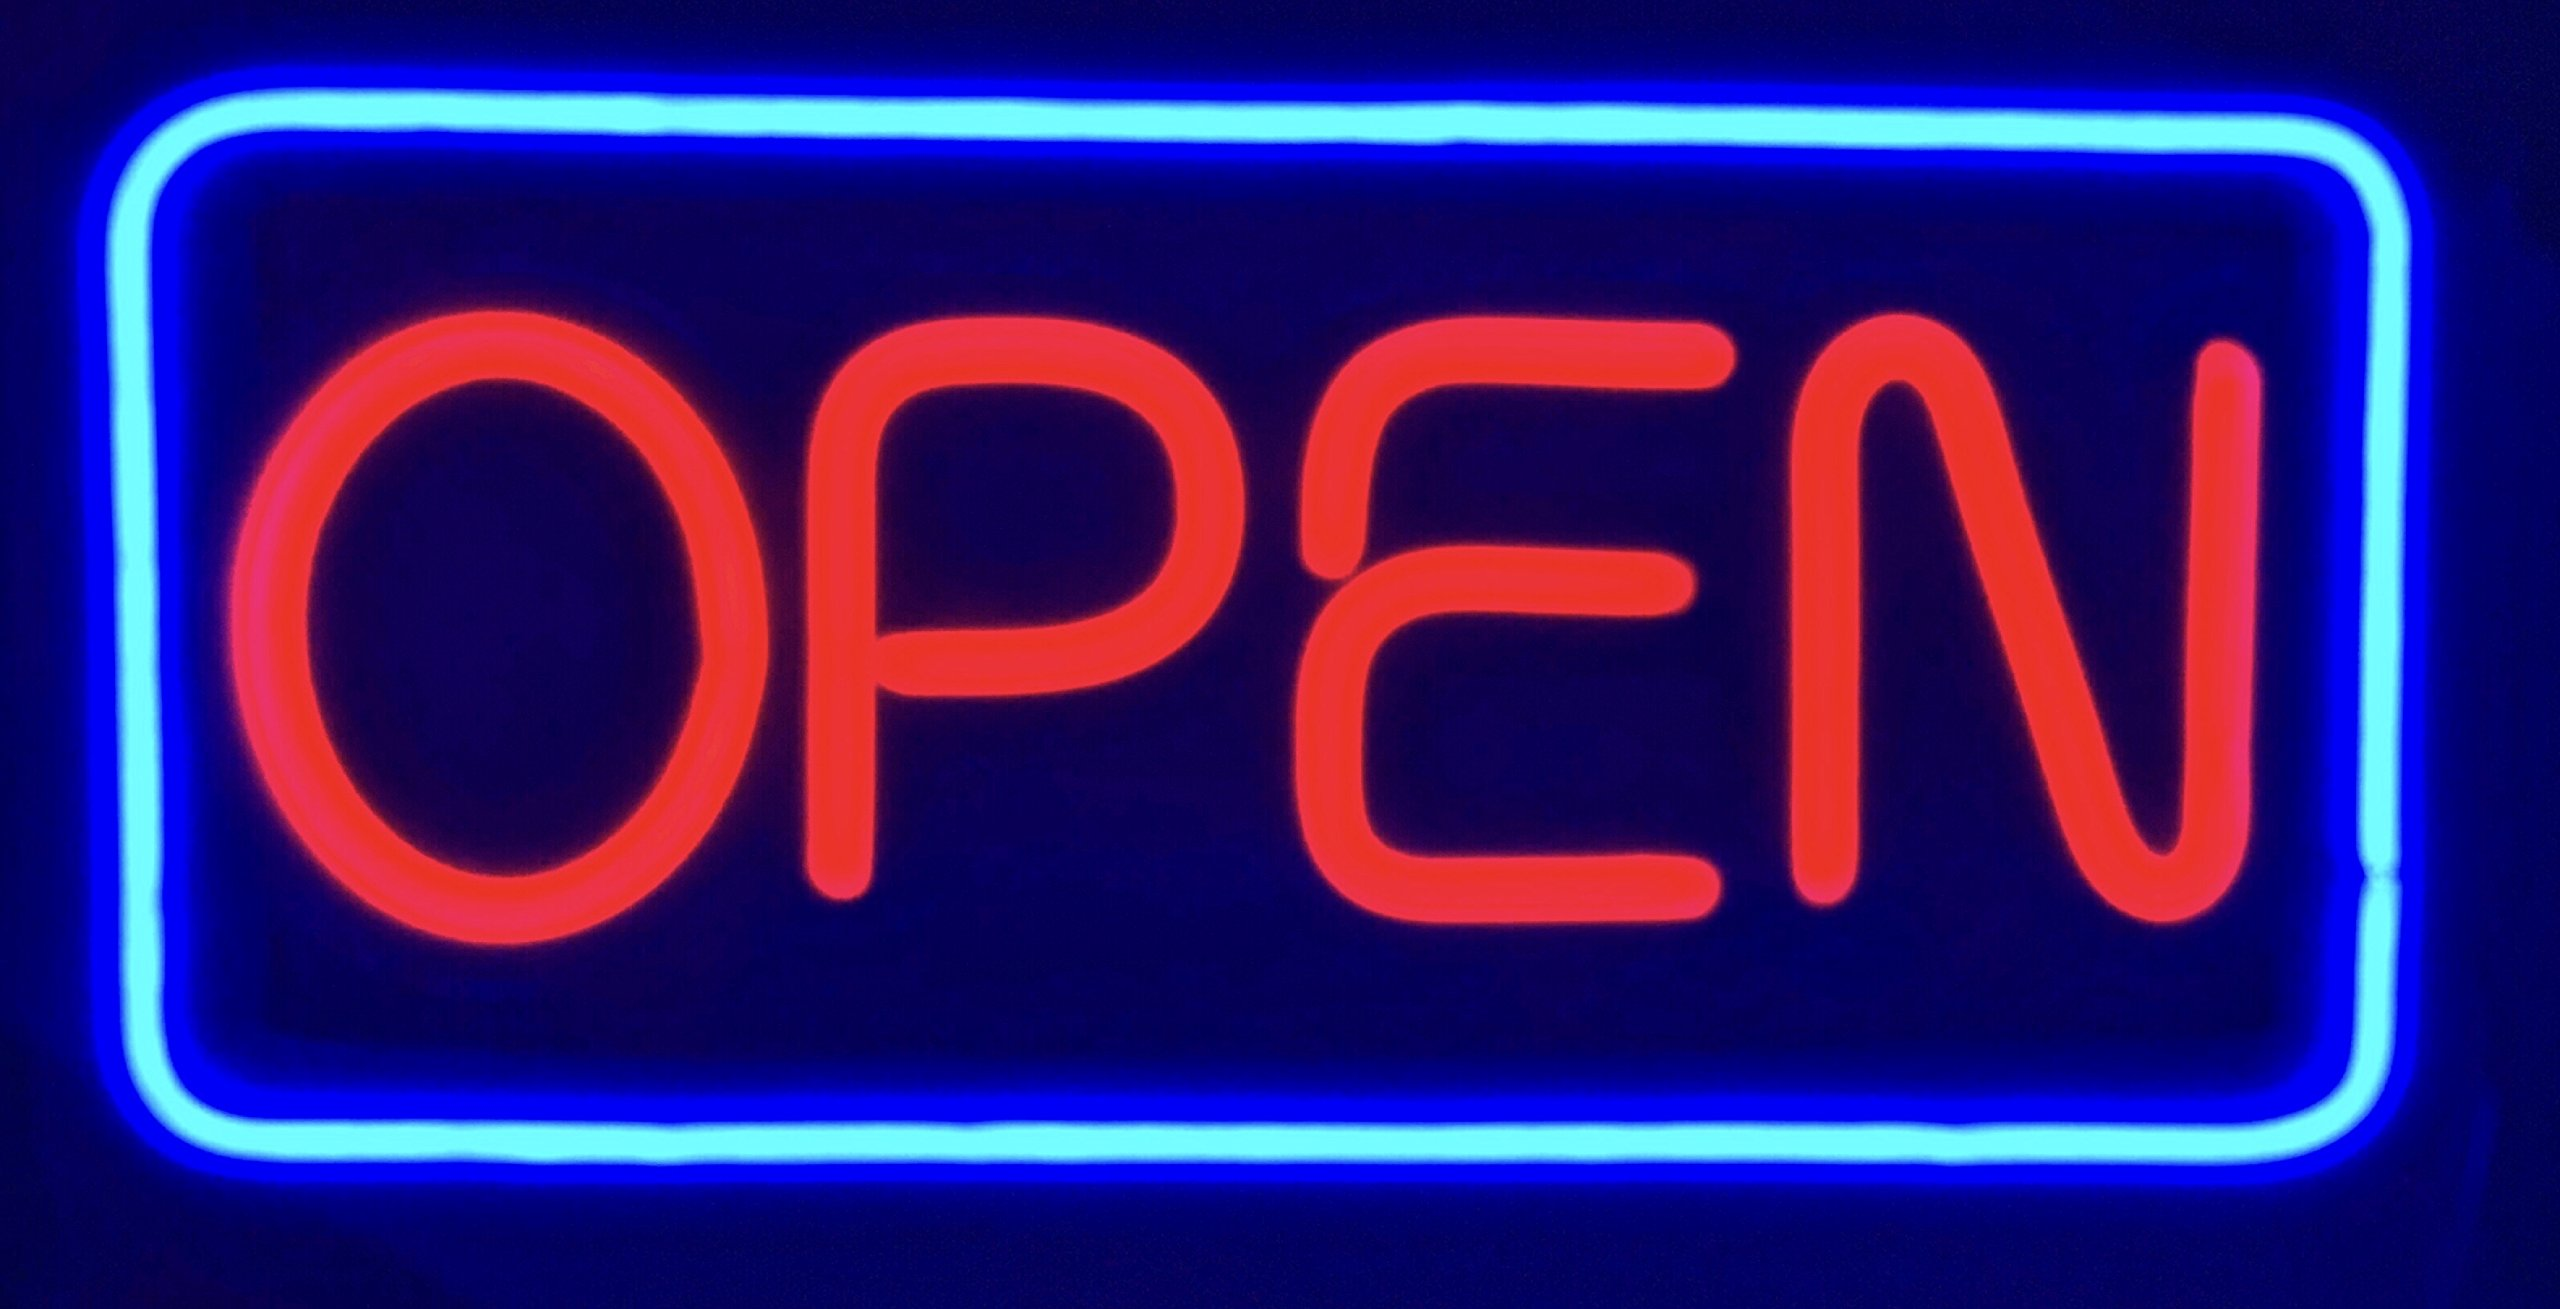 Jumbo Extra Large 24''12'' Rectangular Vivid Bright Color Display LED Open Sign/Light - NEON Tube Style Open Signs - for Retail Store Shop Office Restaurant Business BAR